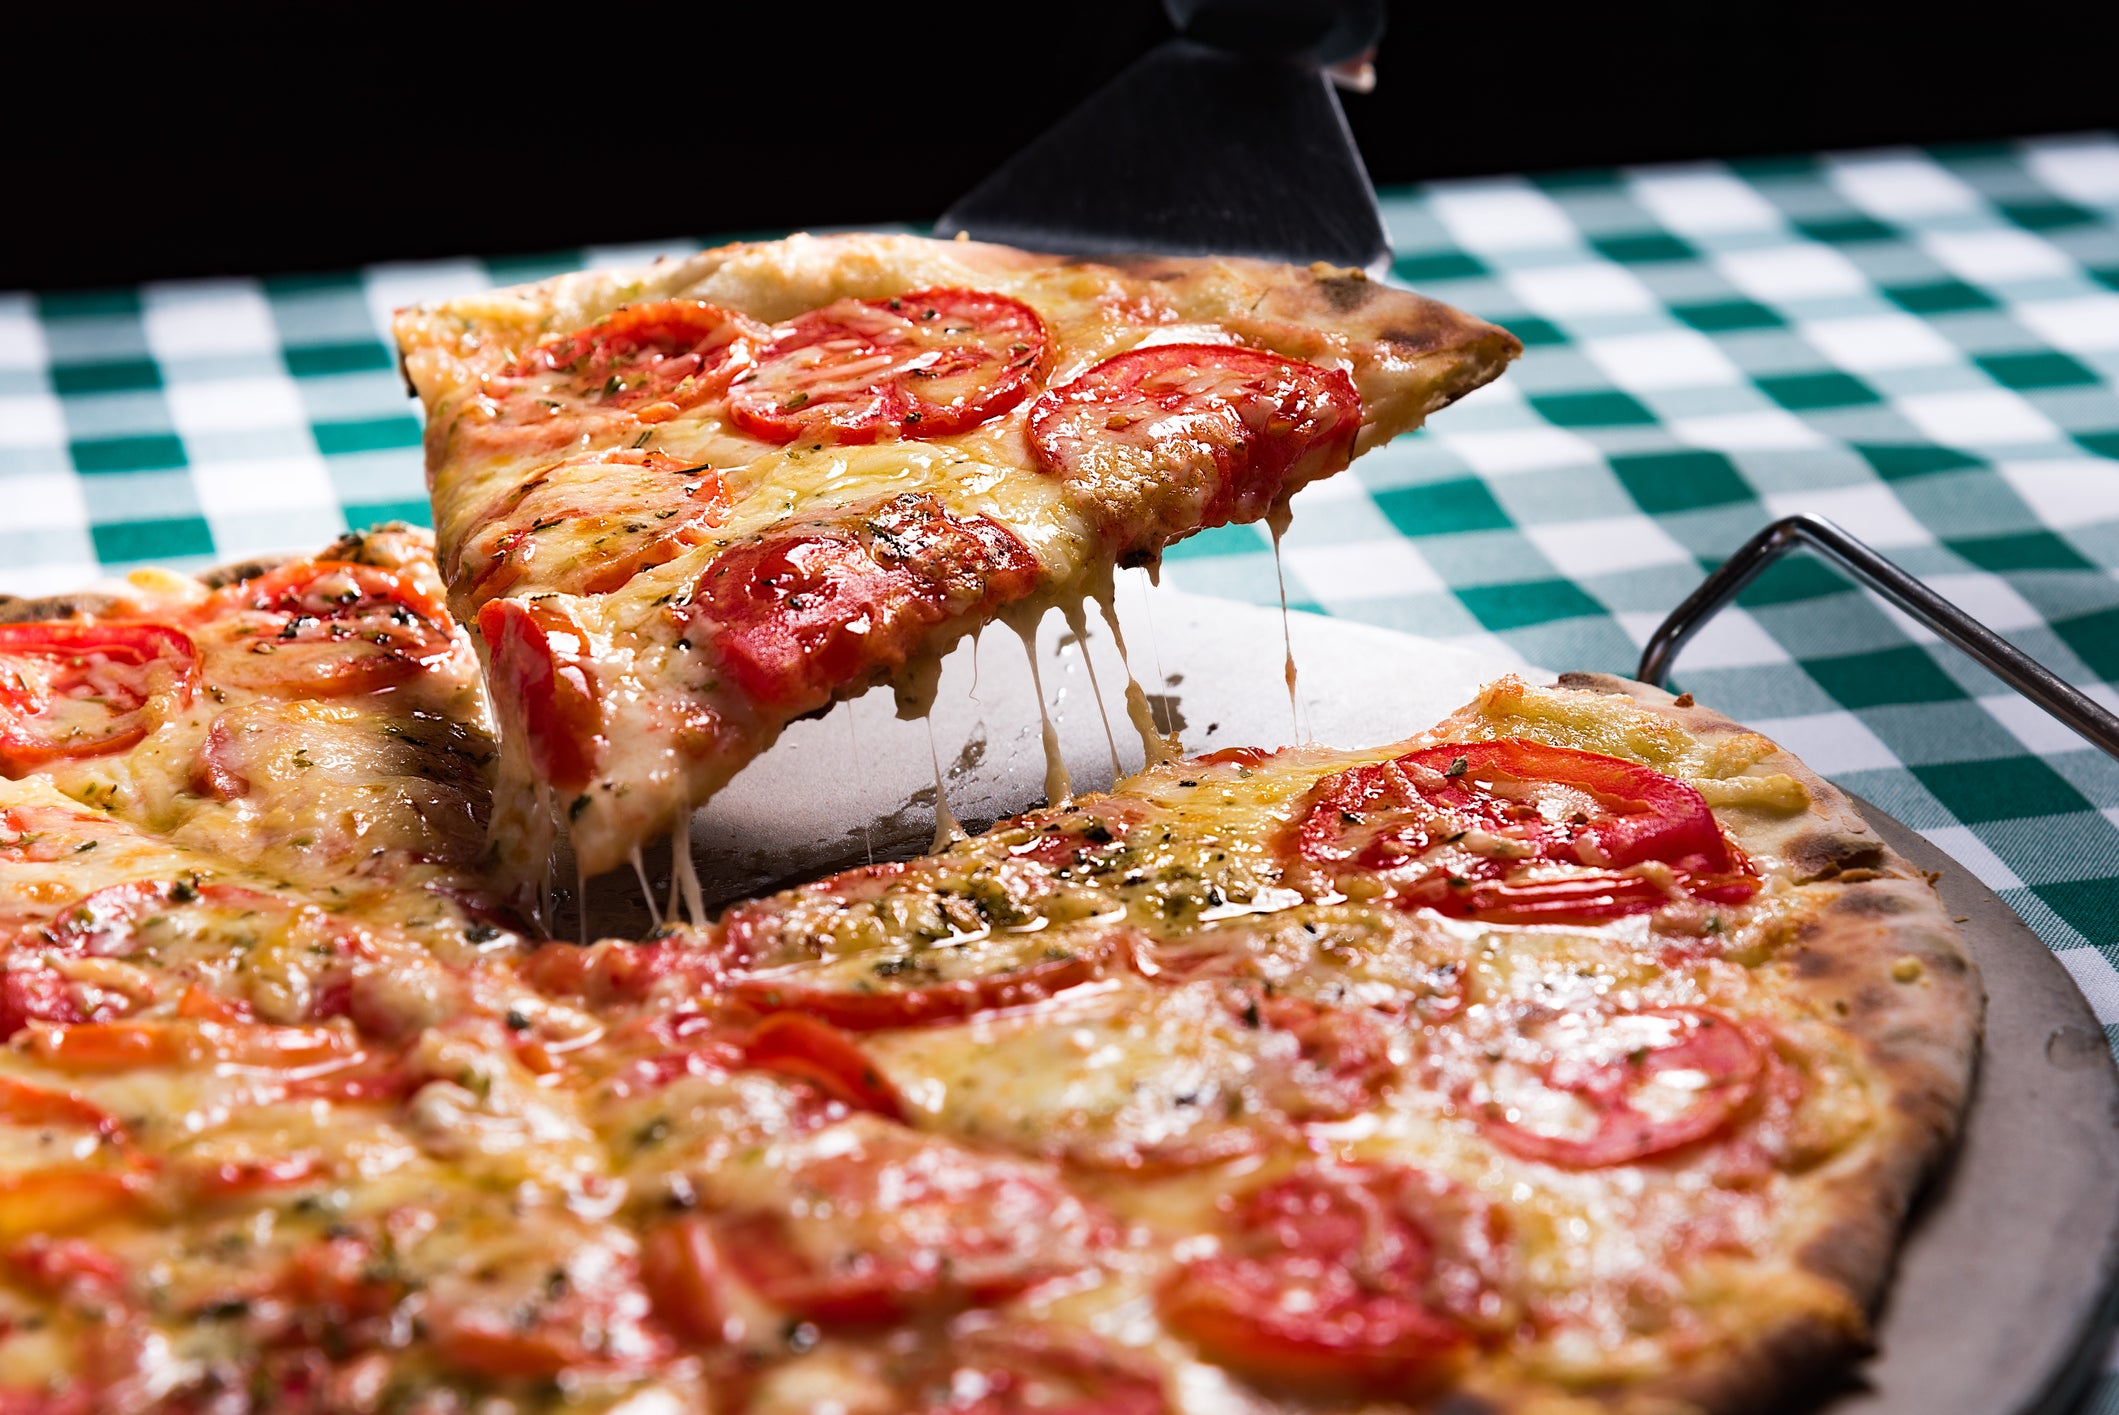 Pizza Hut's Largest Franchisee May Go Bankrupt | The Motley Fool